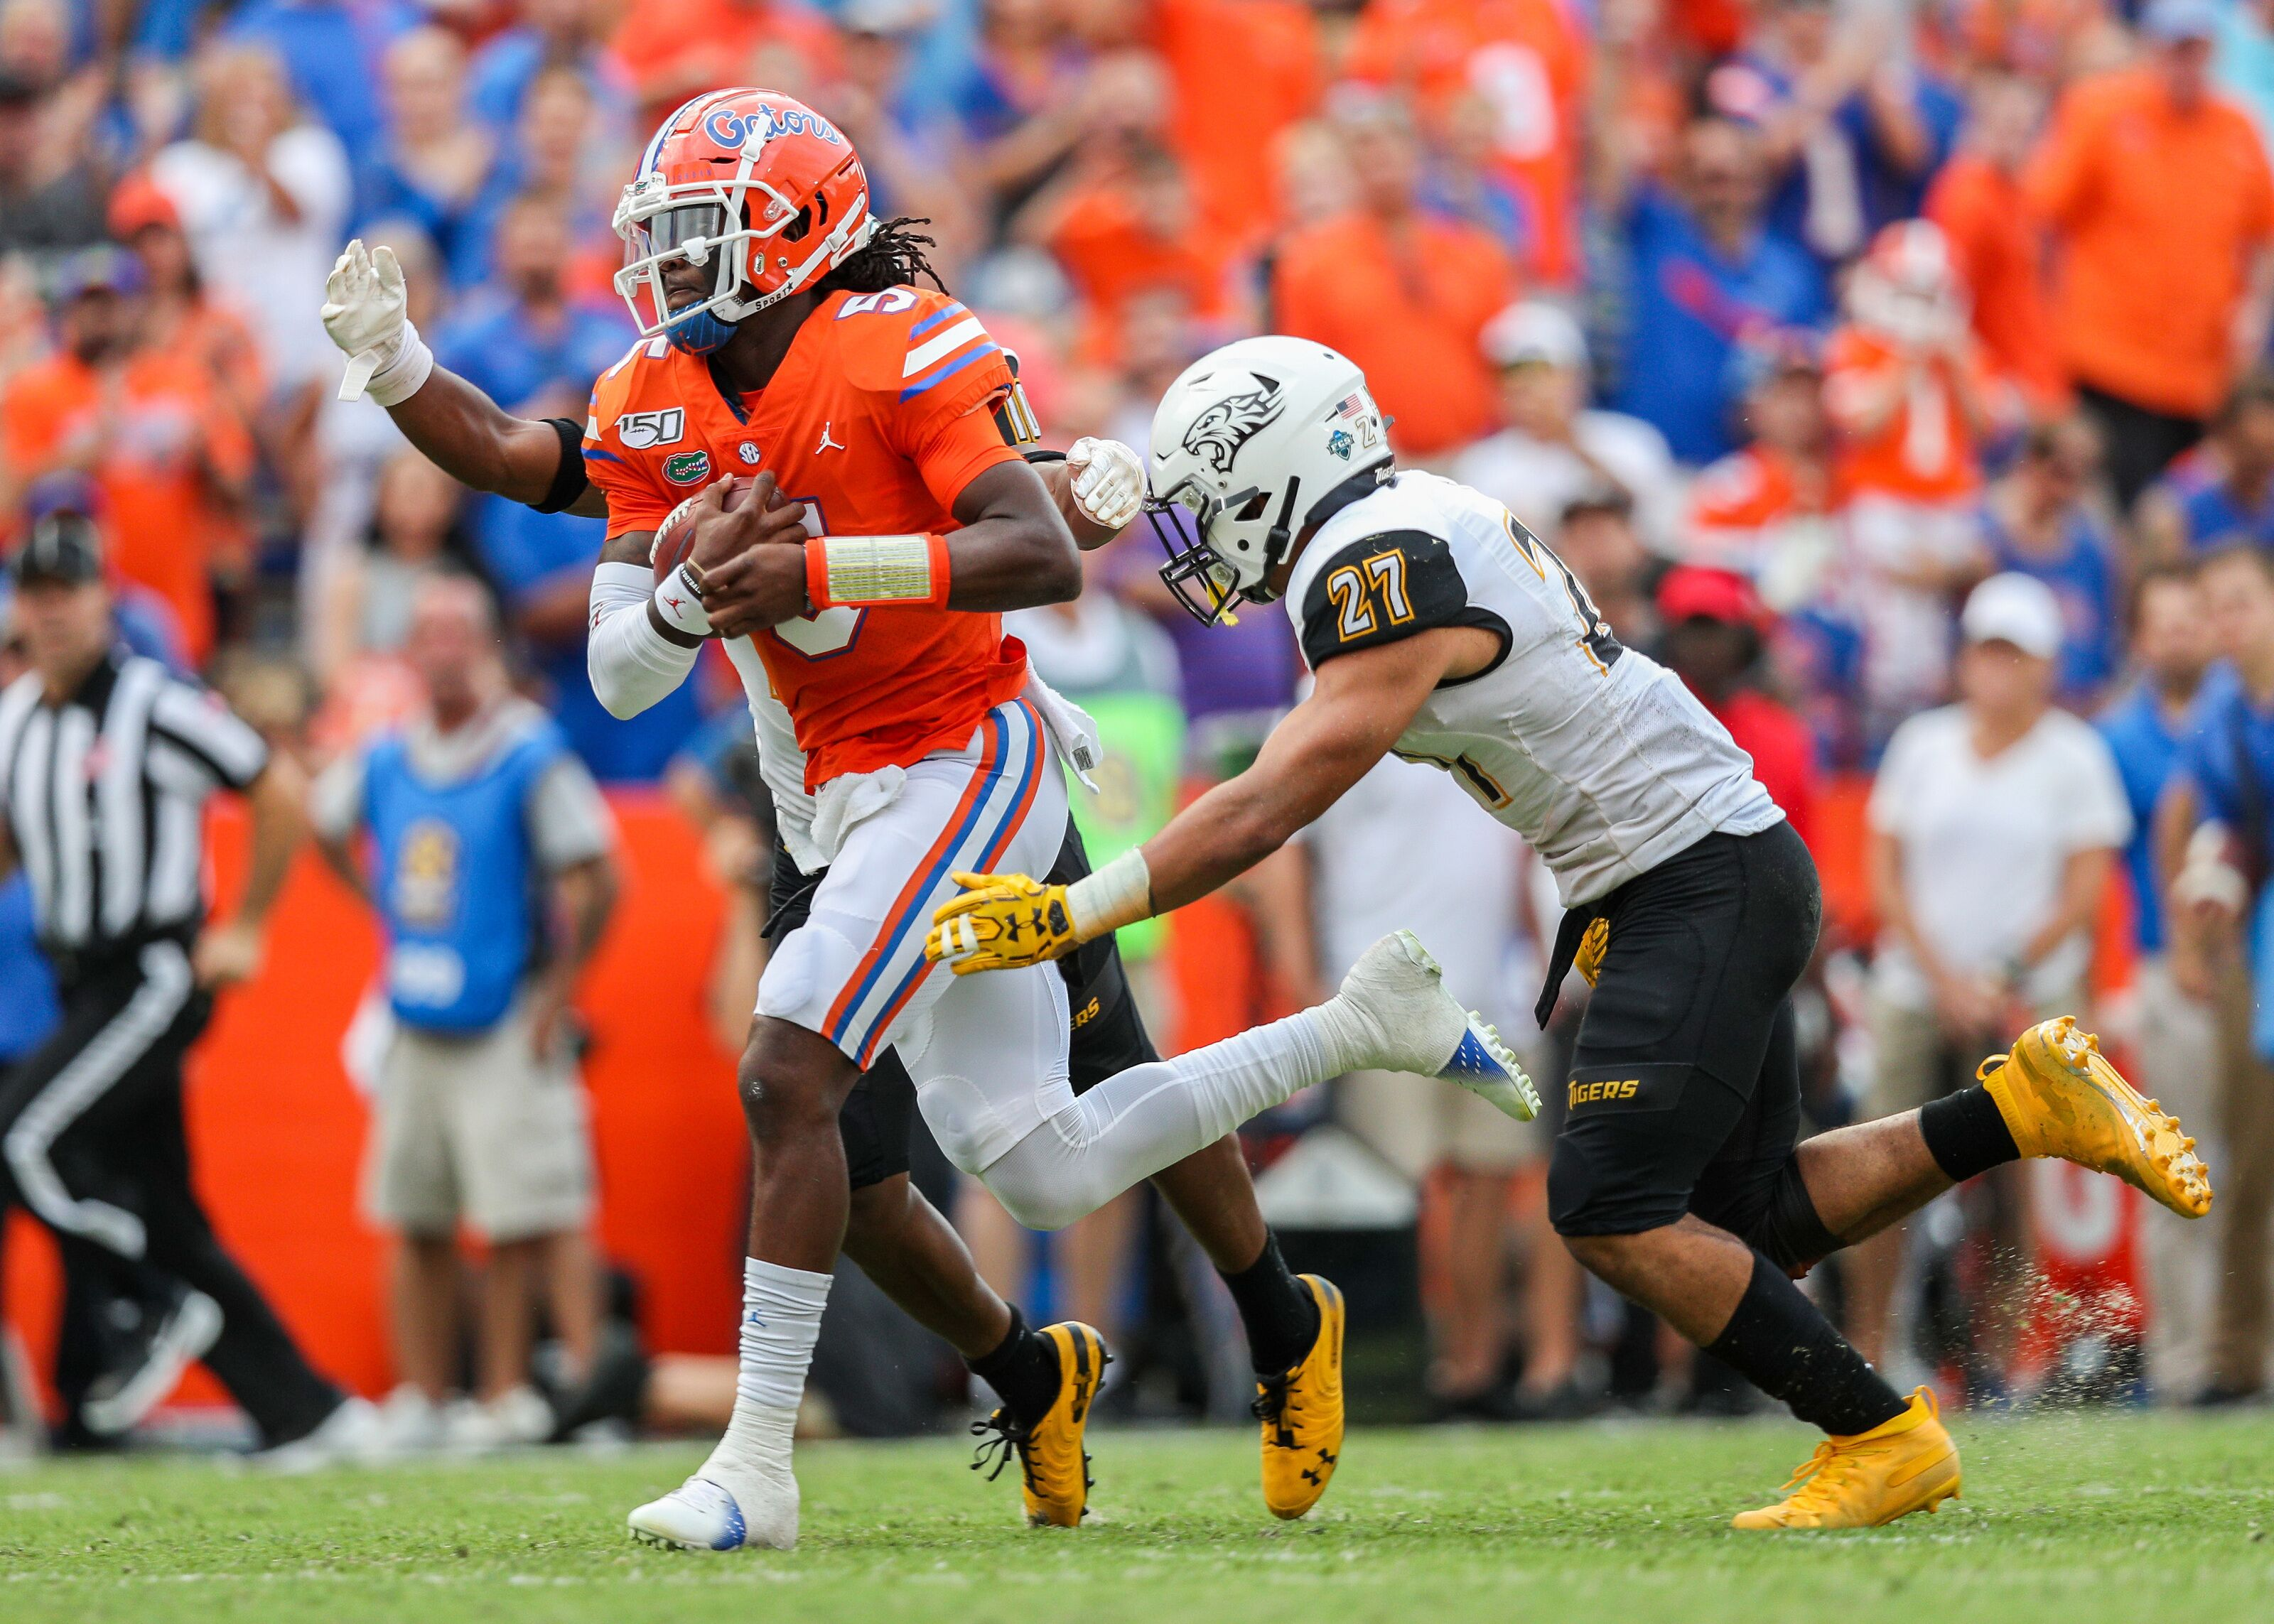 Florida football: Kyle Trask and Emory Jones to be in sync on Saturday